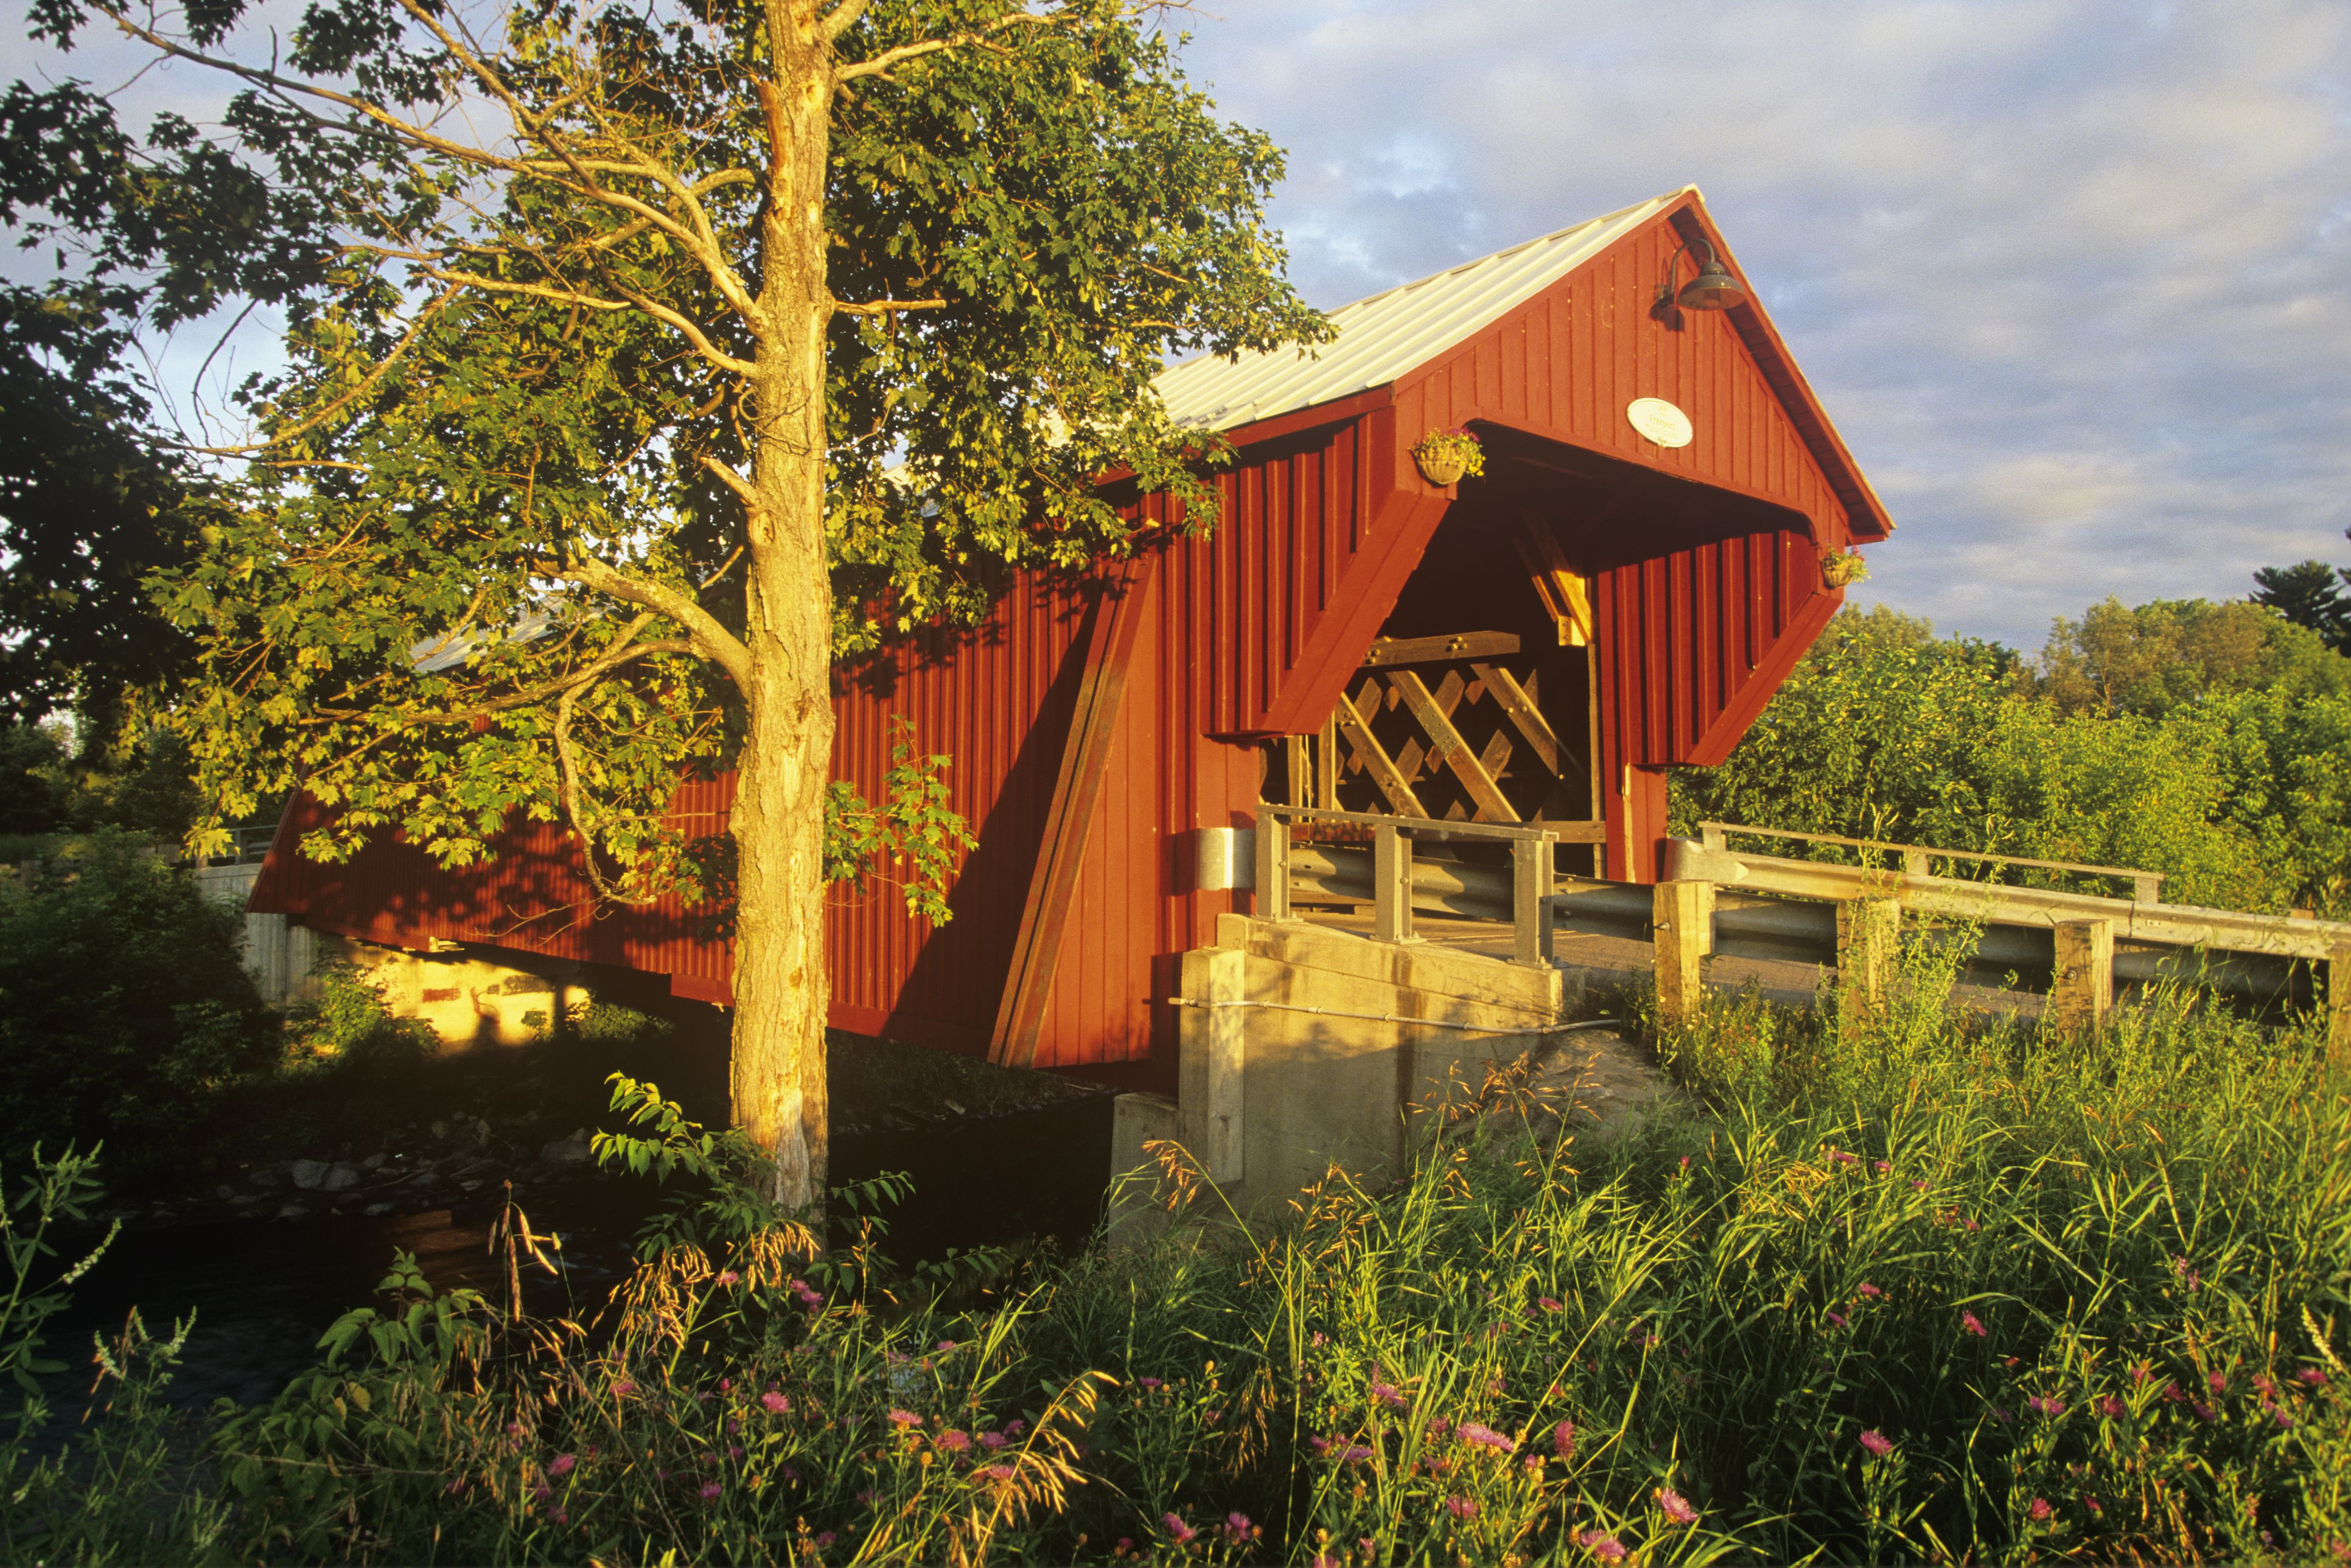 Freeport Covered Bridge, 1870, Cowansville, Eastern townships, Quebec, Canada